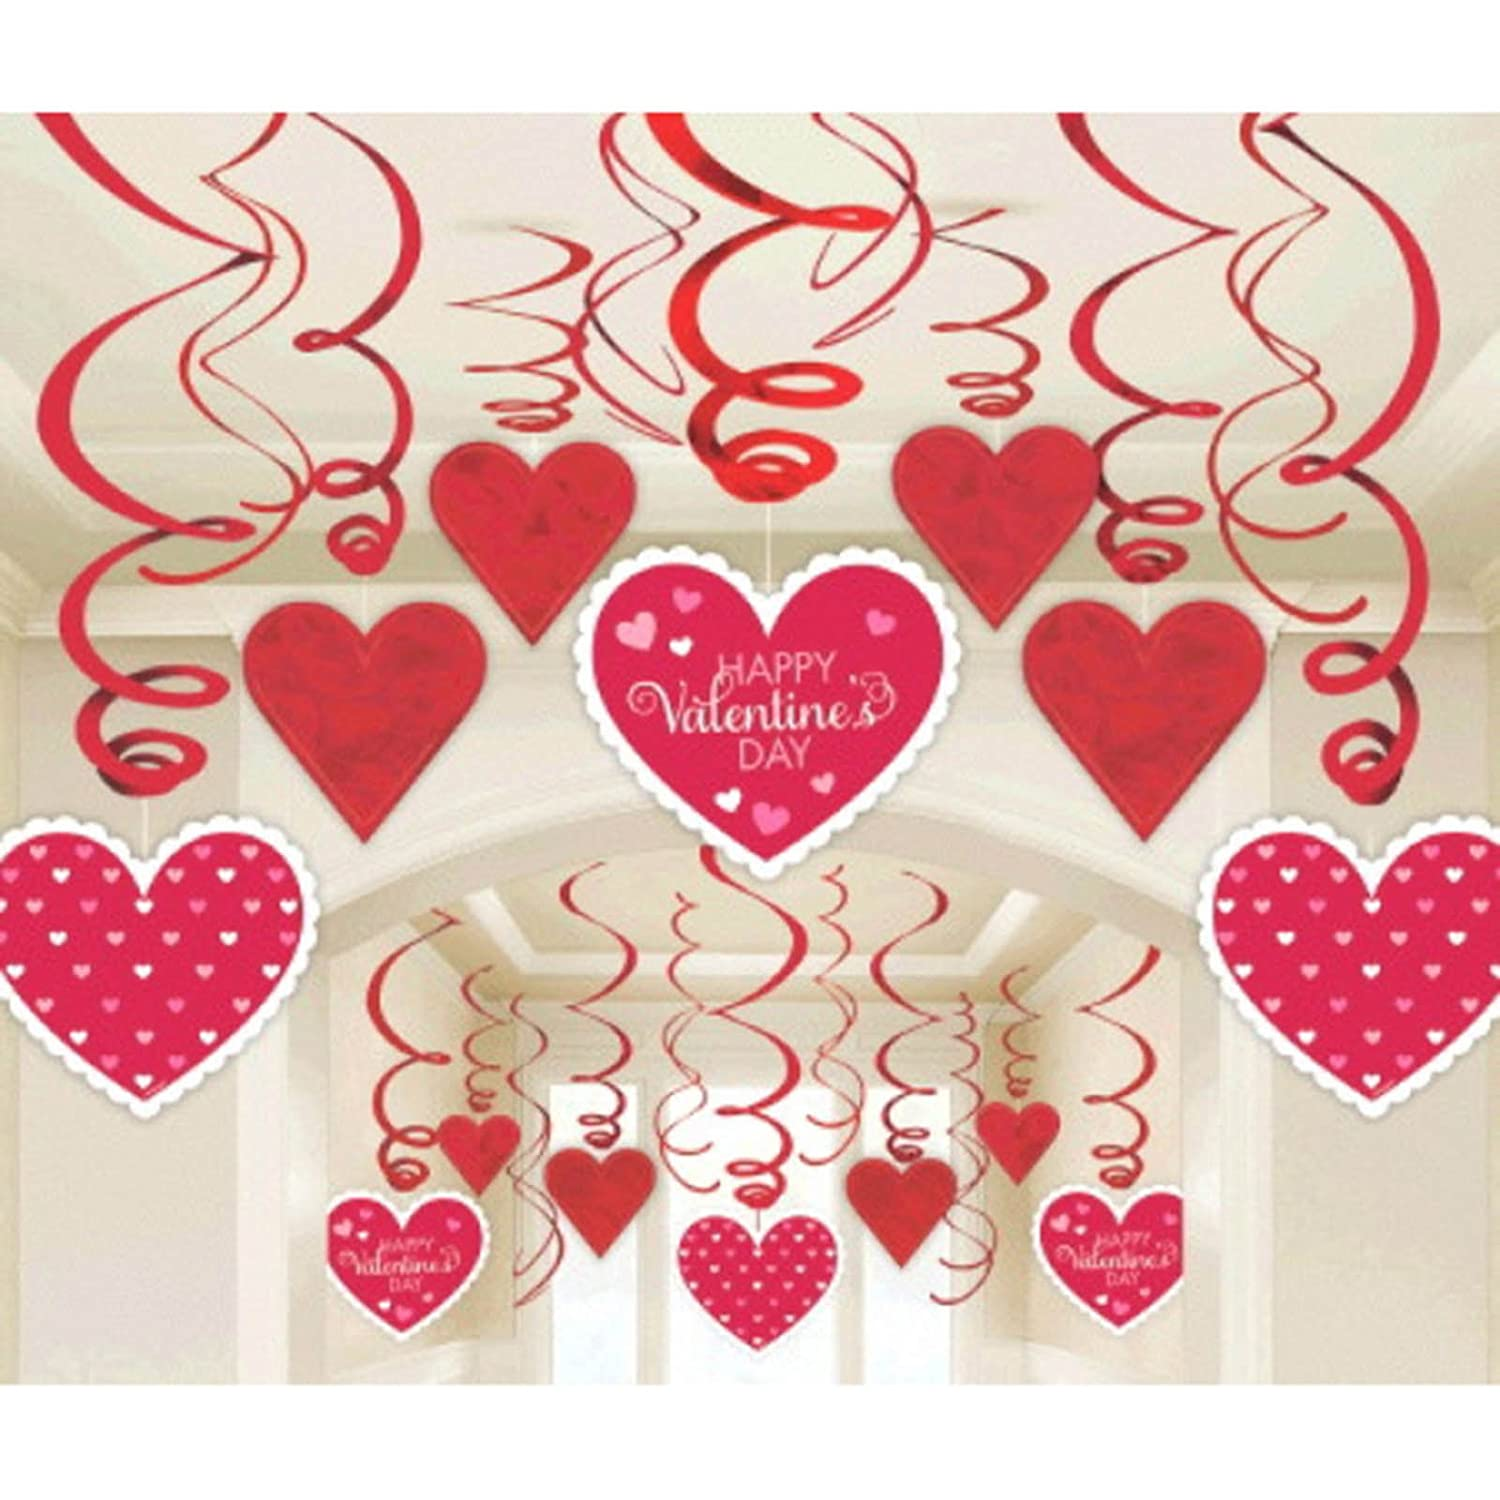 milwaukee the valentine planning in decorations s table vision wedding day valentines coffee wi for majestic decor